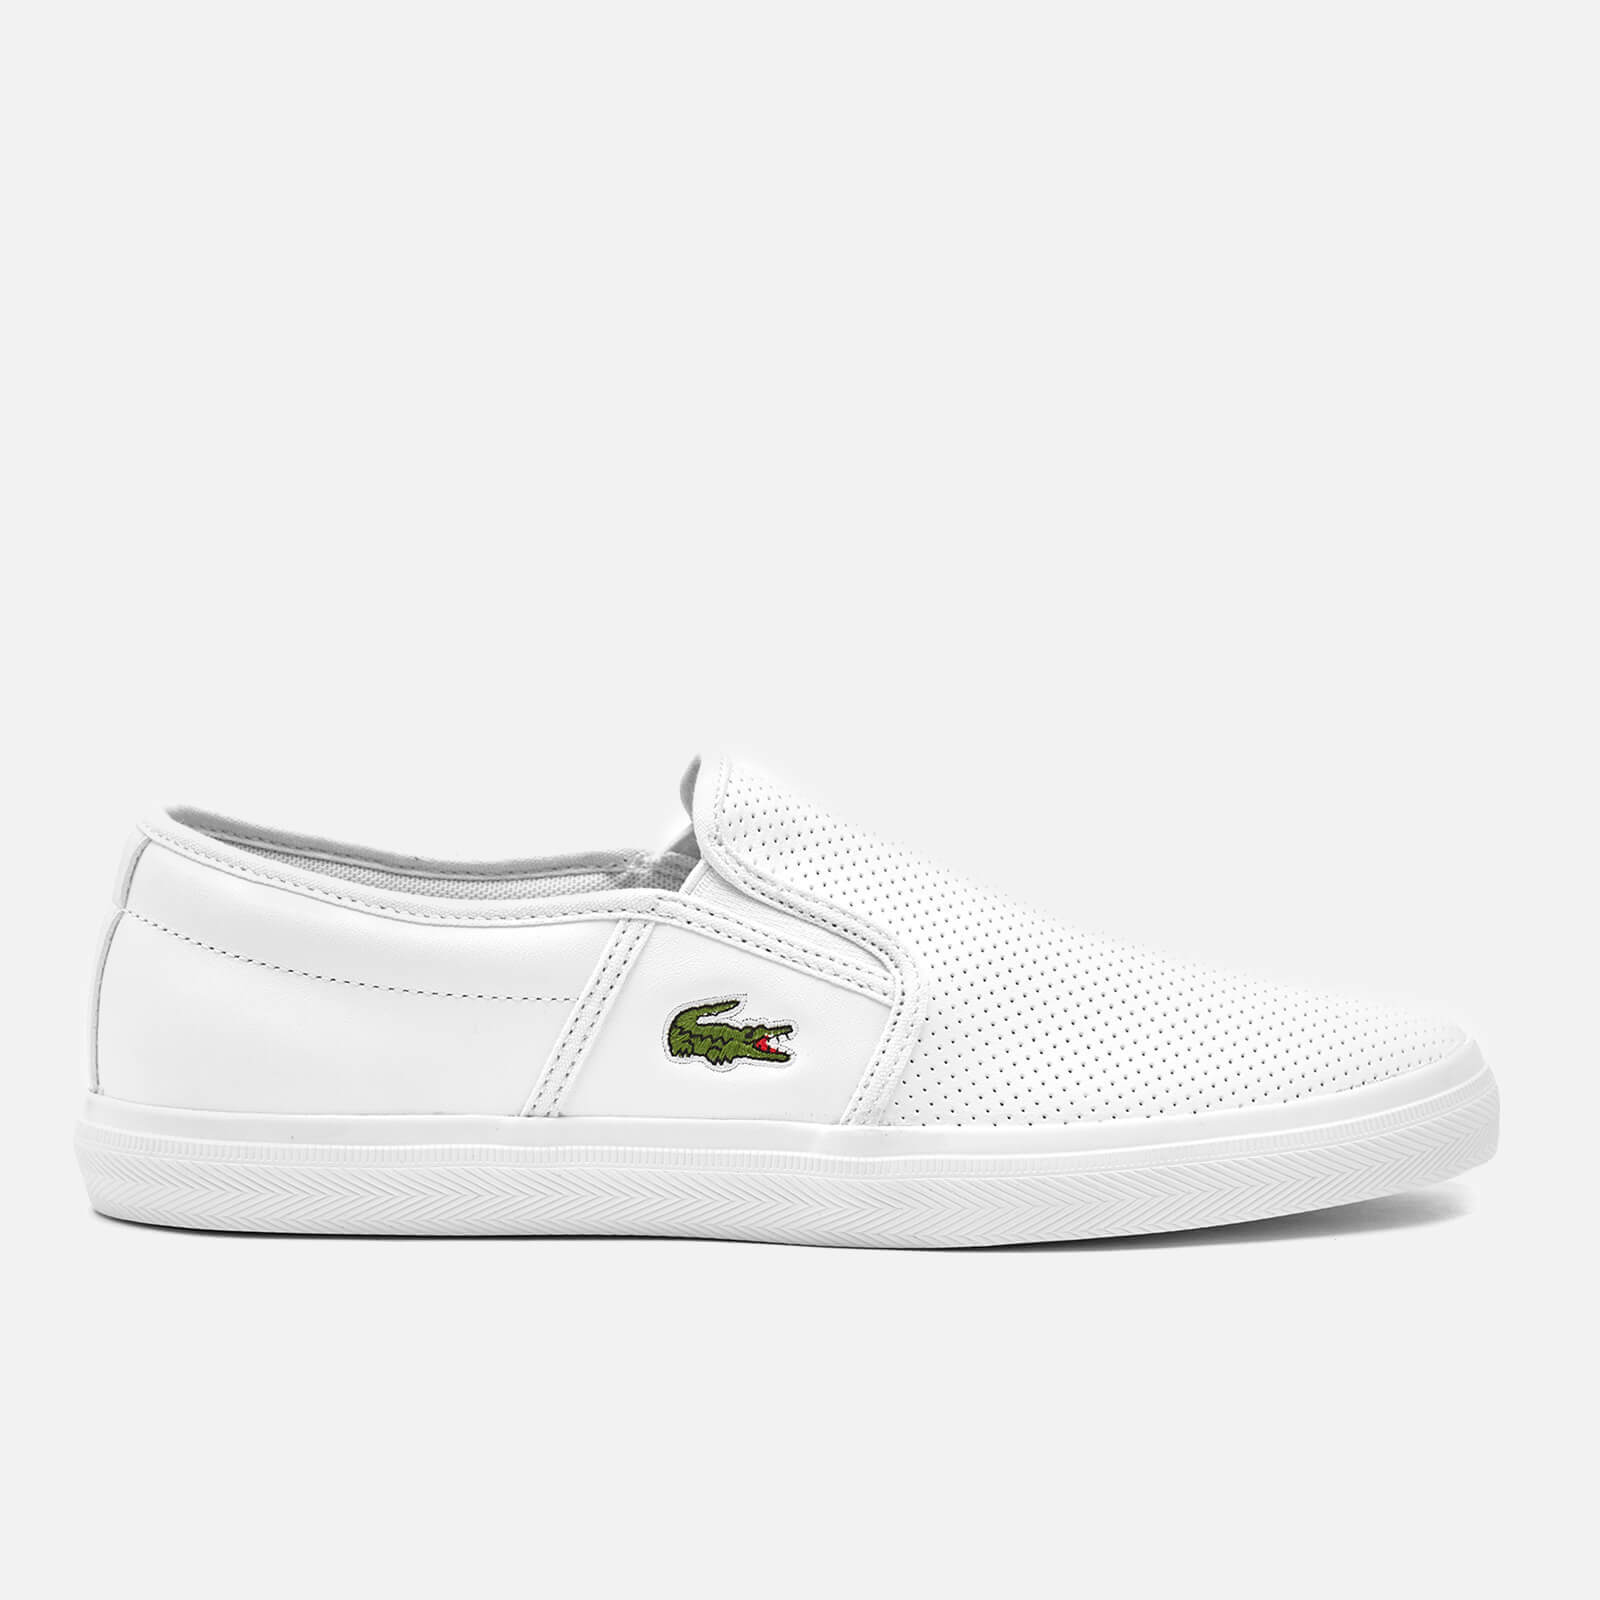 7679633fa Lacoste Men s Gazon Bl 1 Leather Slip-On Trainers - White Mens Footwear